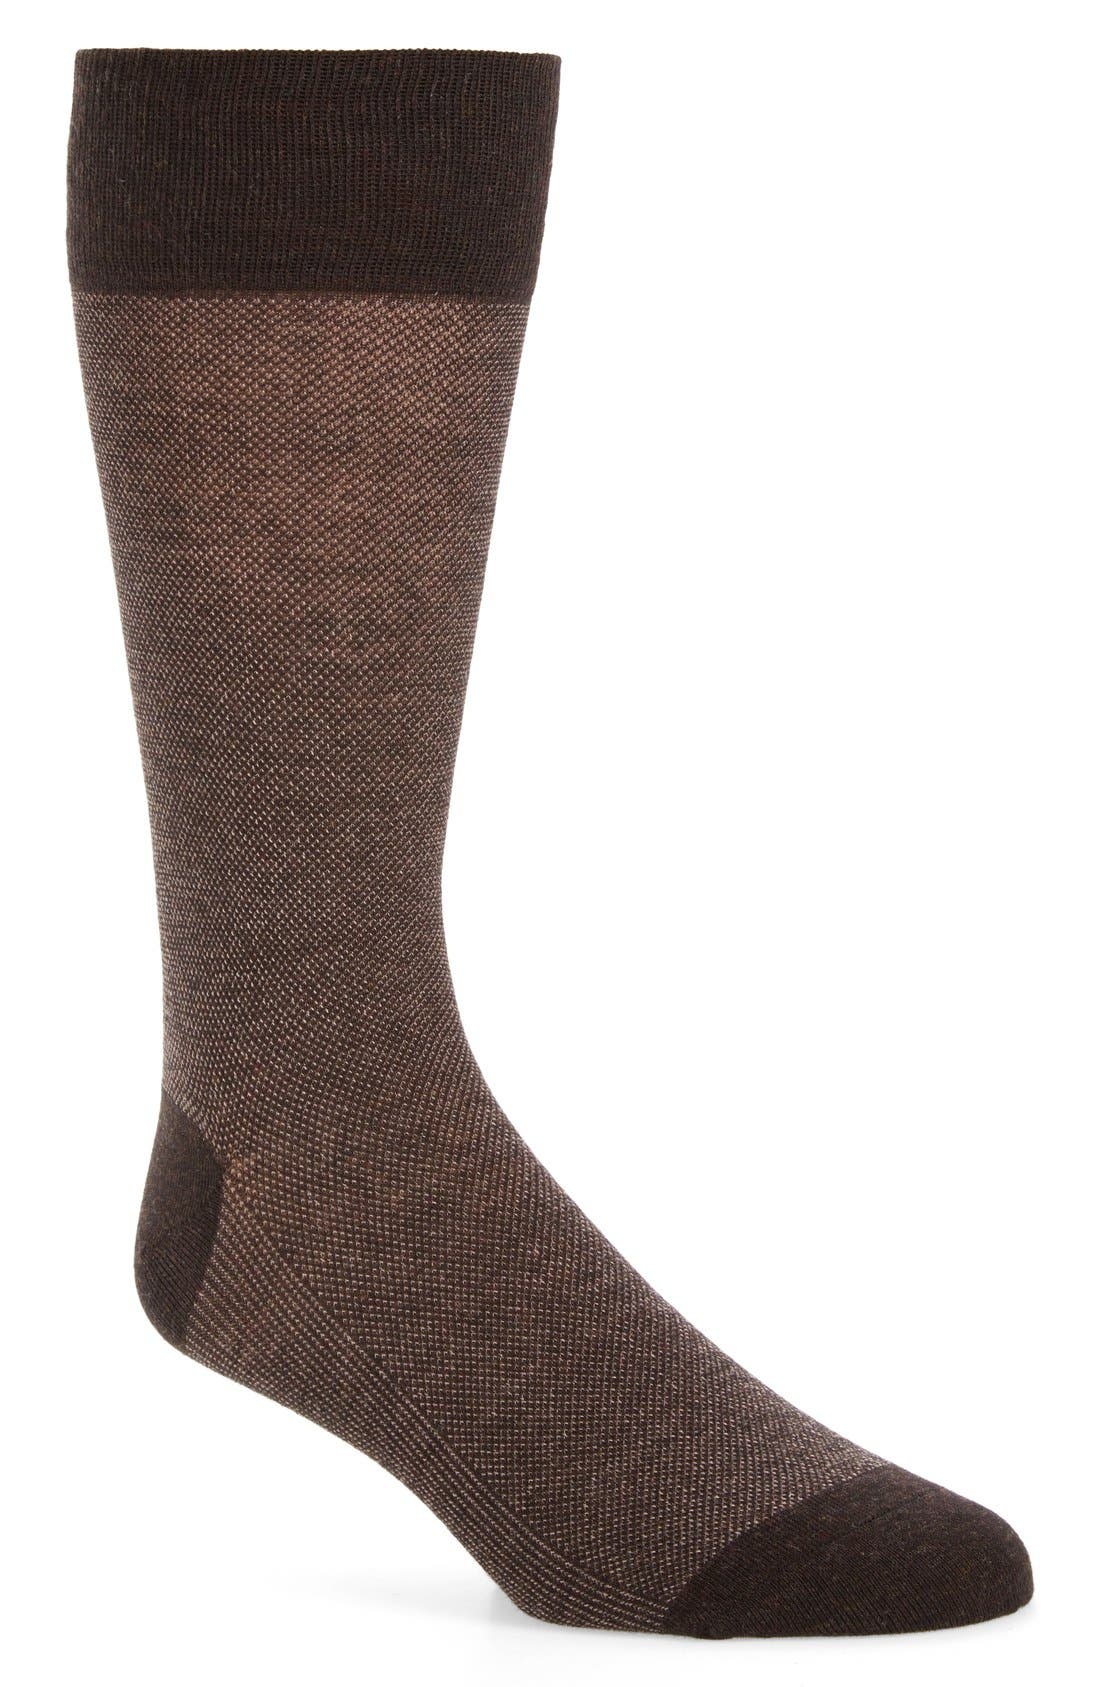 Main Image - Cole Haan Piqué Texture Crew Socks (3 for $30)